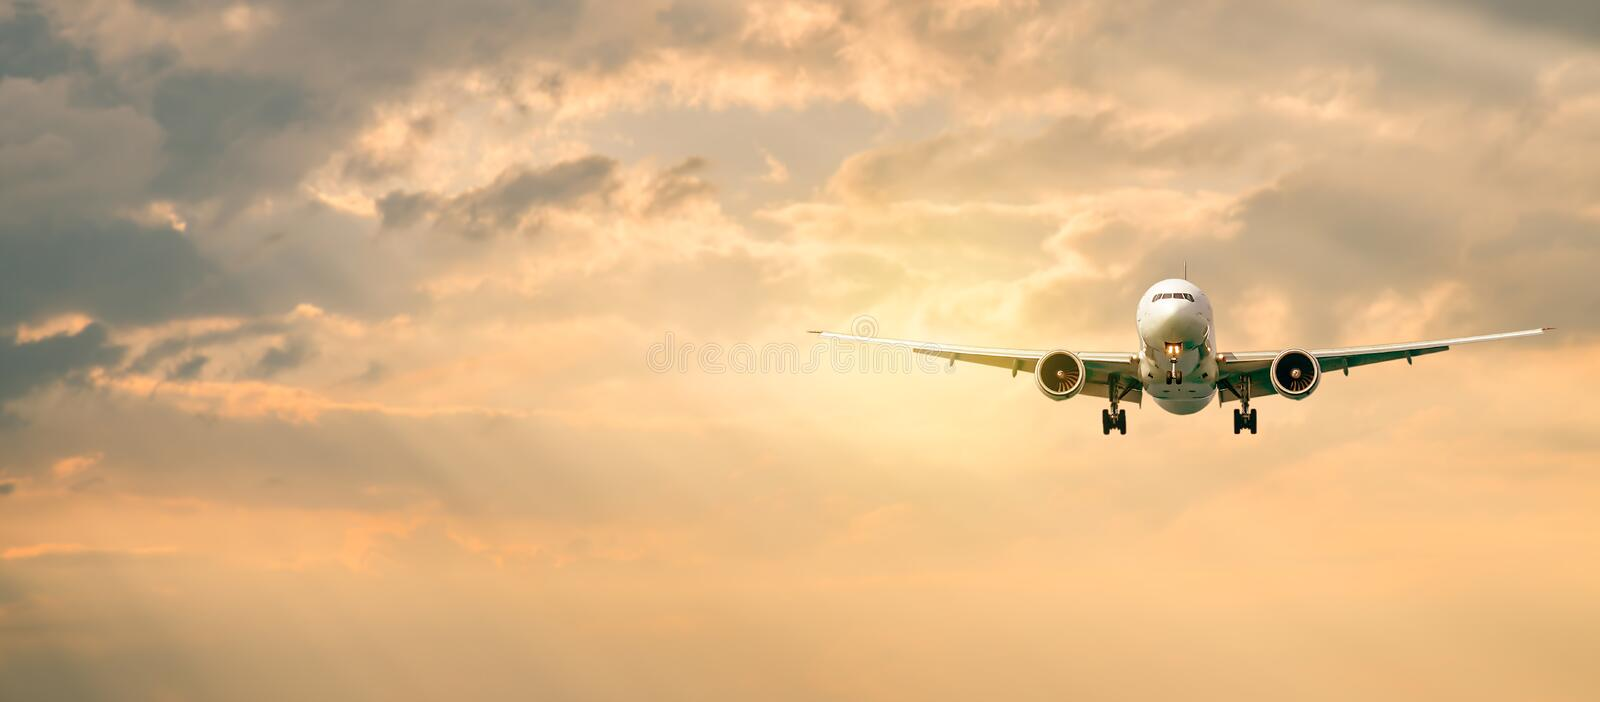 Passenger airplane. Landscape with Front of white airplane is flying in the orange sky with clouds, Passenger aircraft is landing royalty free stock photo